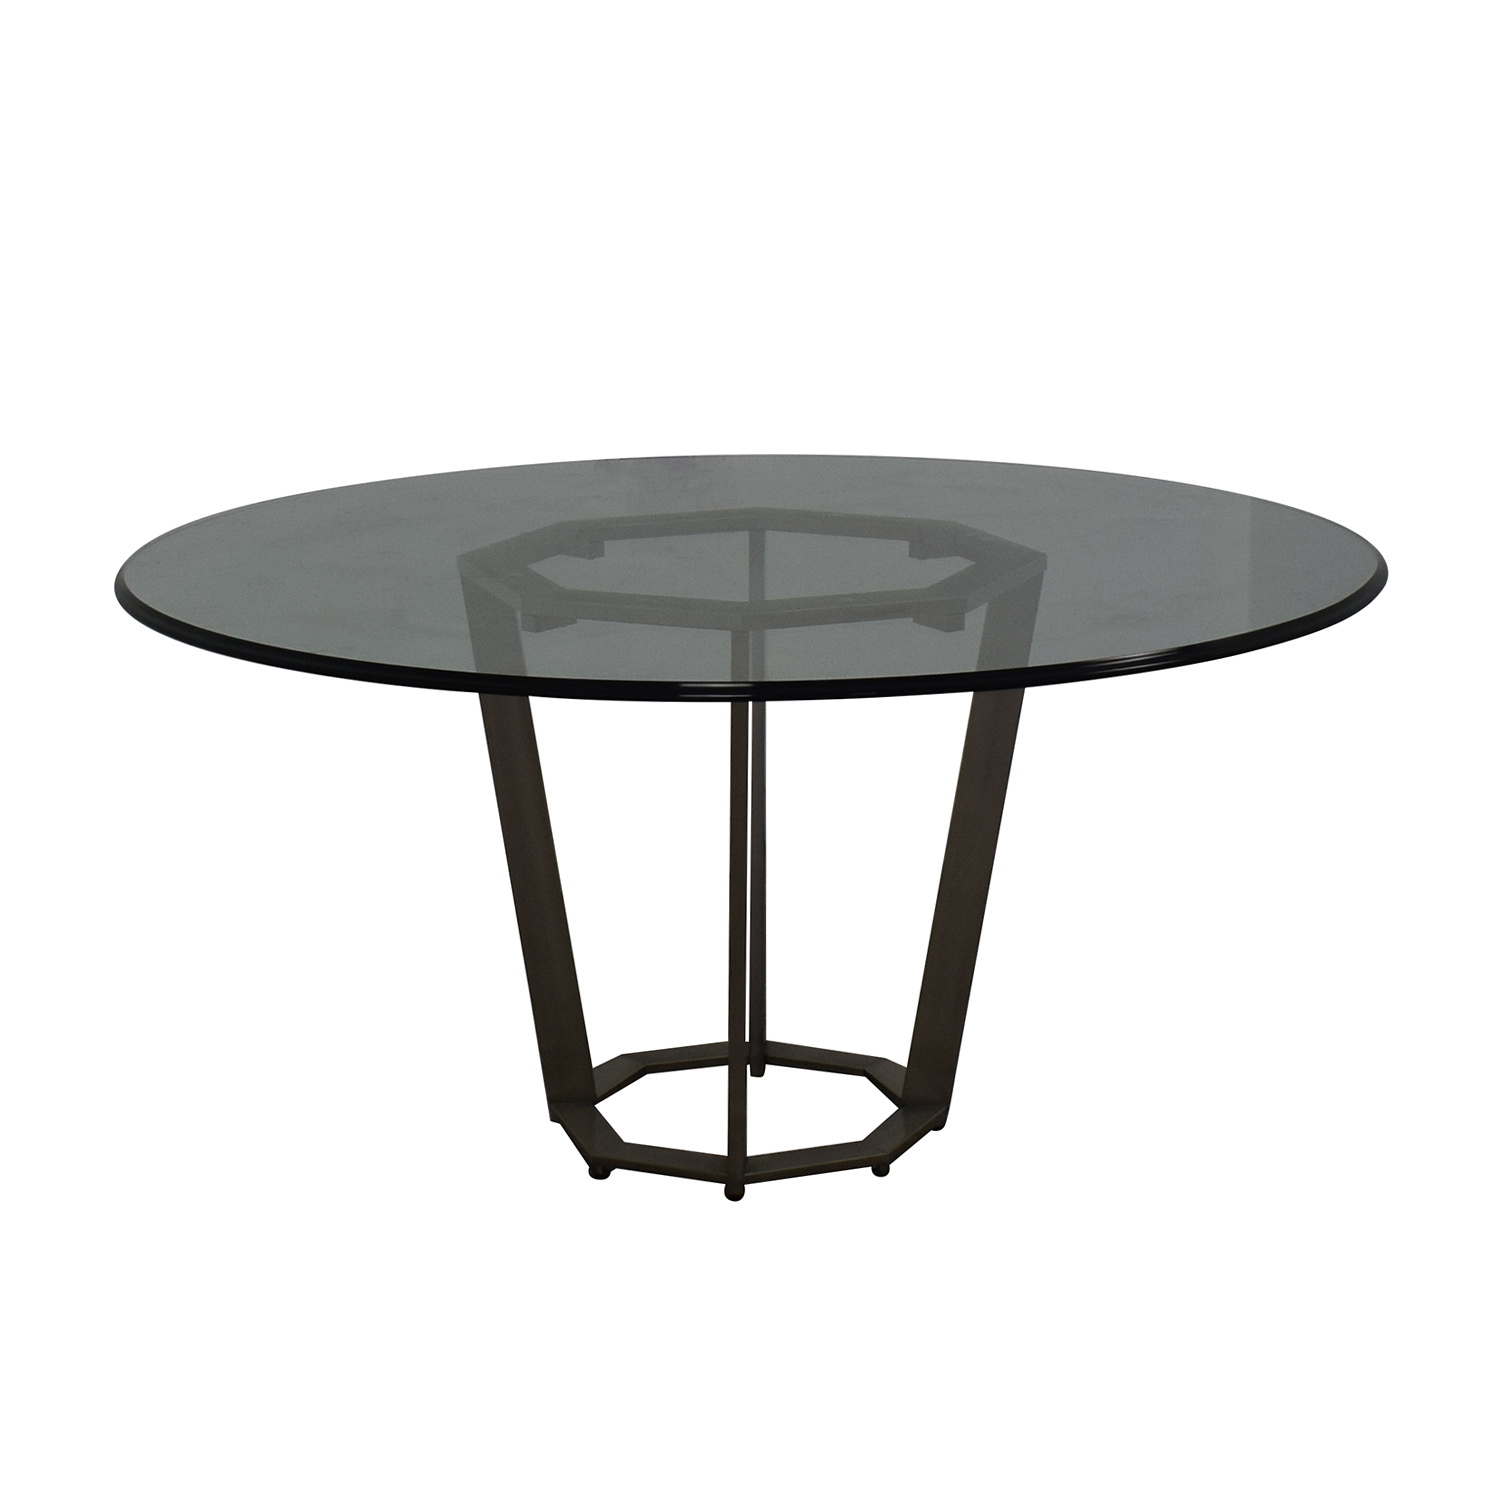 Round Glass Dining Table price